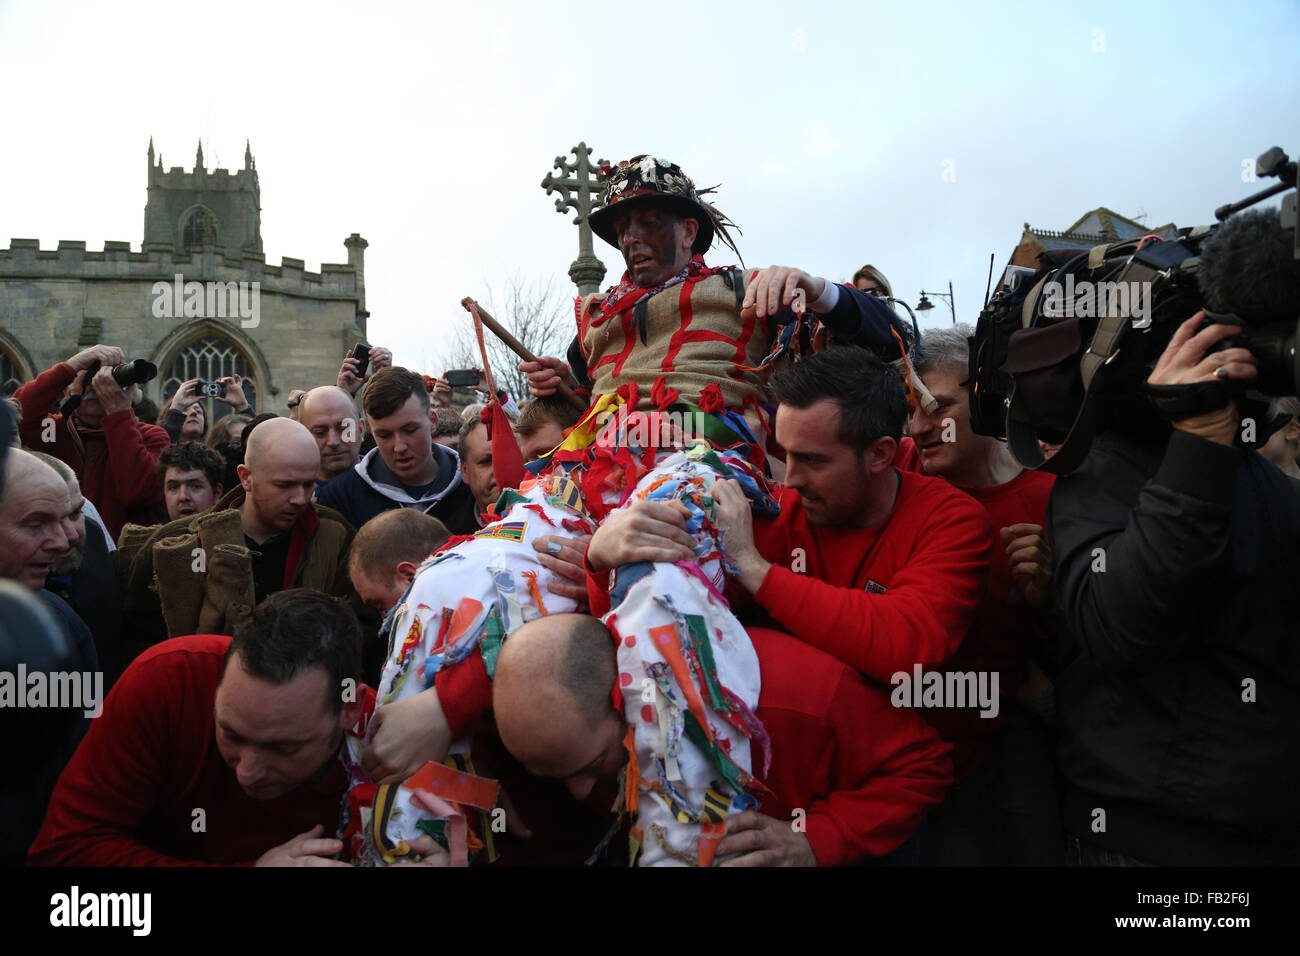 The fool is carried to the mounting block ready to make his speech and then be 'smoked' before the start of the Stock Photo